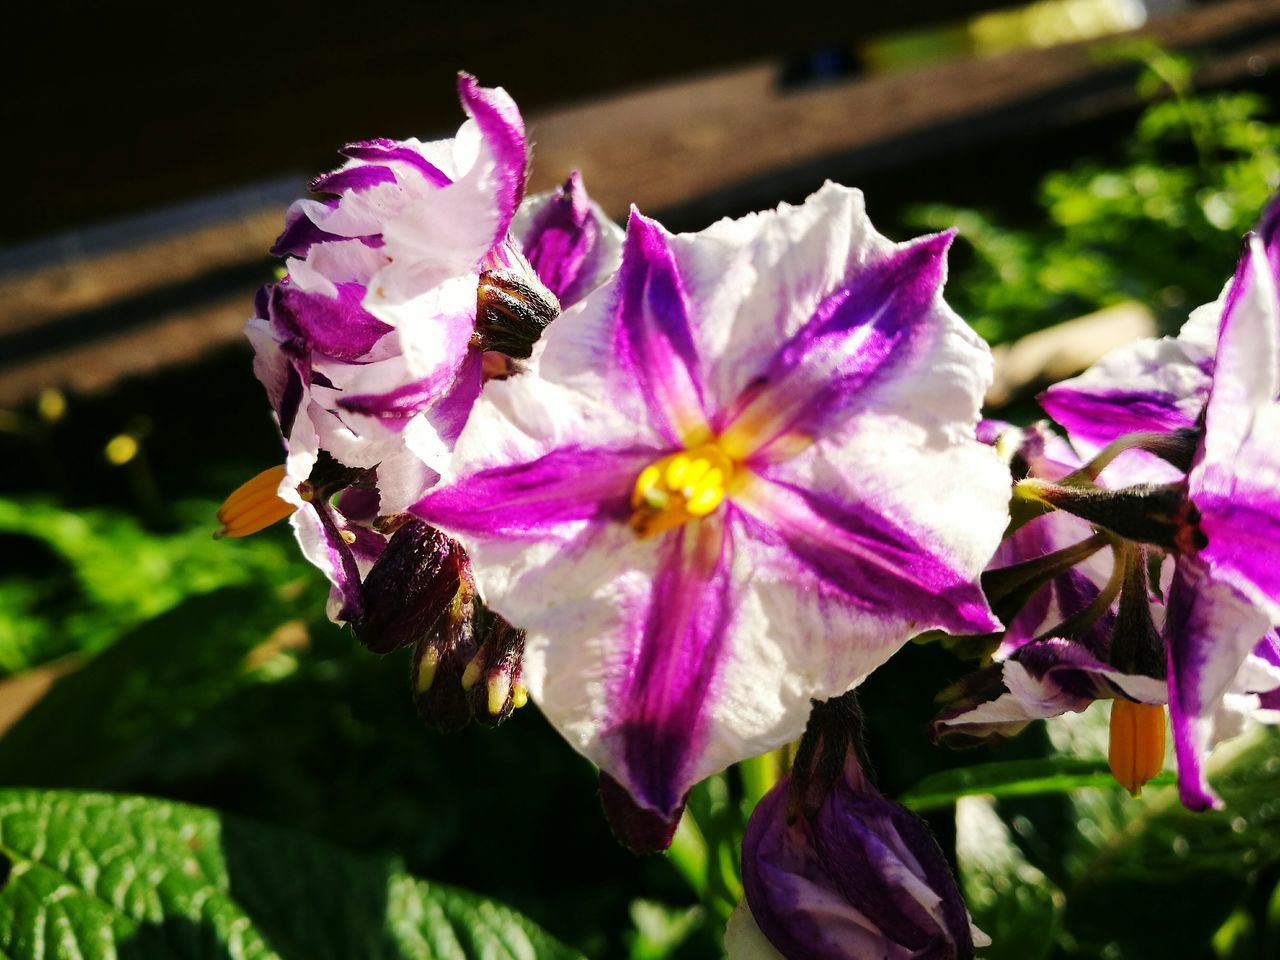 flower, petal, fragility, beauty in nature, freshness, nature, flower head, plant, growth, no people, purple, close-up, outdoors, day, focus on foreground, sunlight, blooming, petunia